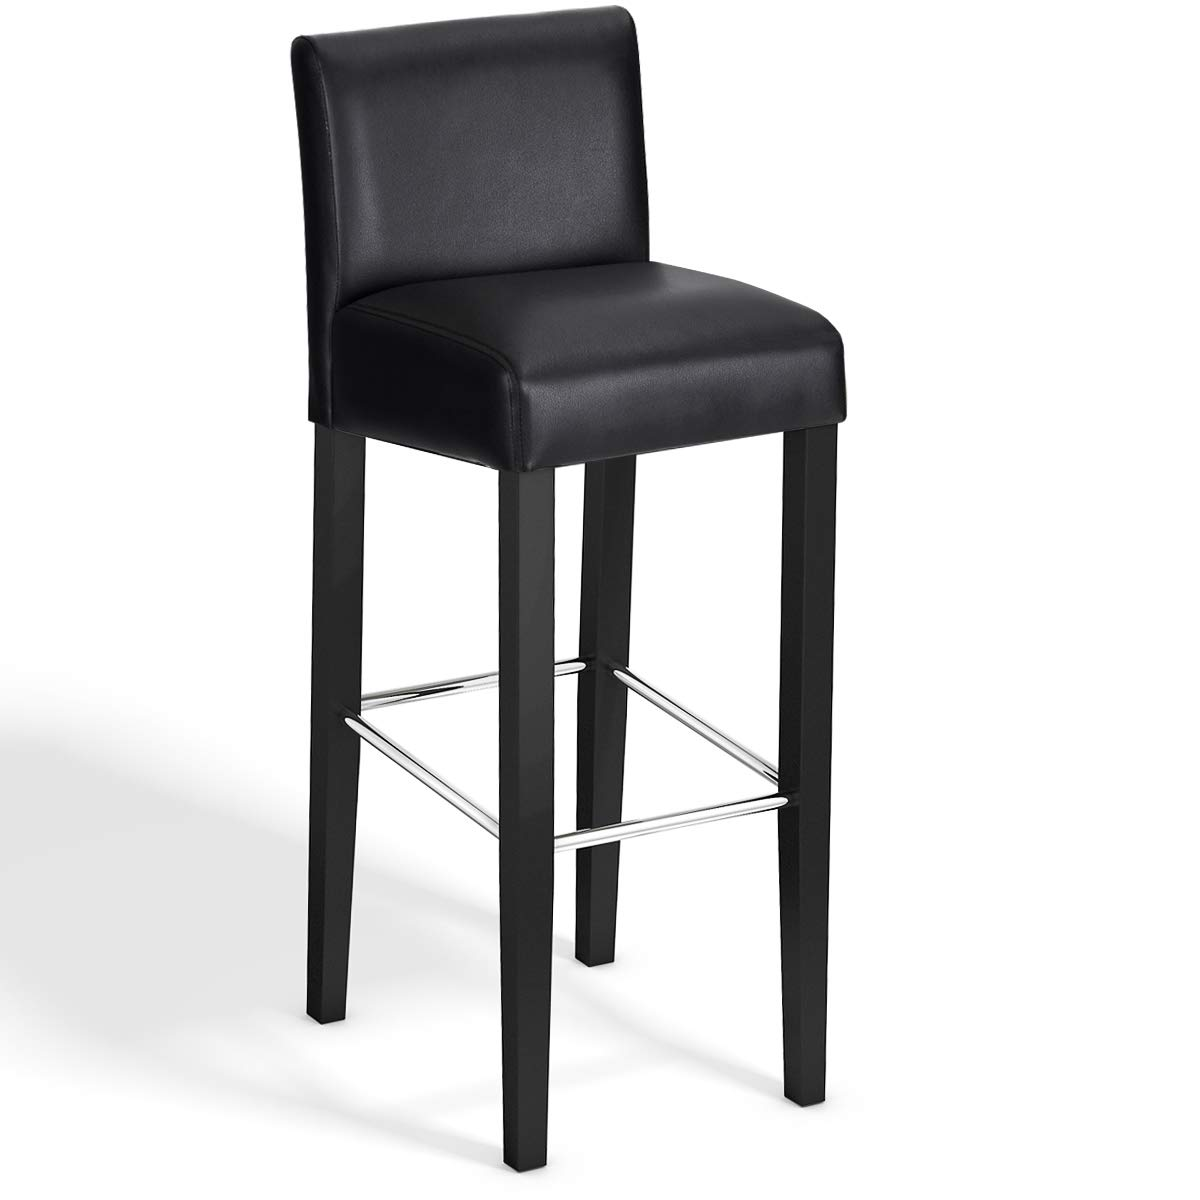 Fantastic Amazon Com Costway 40 Bar Stool Modern Contemporary Bar Gmtry Best Dining Table And Chair Ideas Images Gmtryco